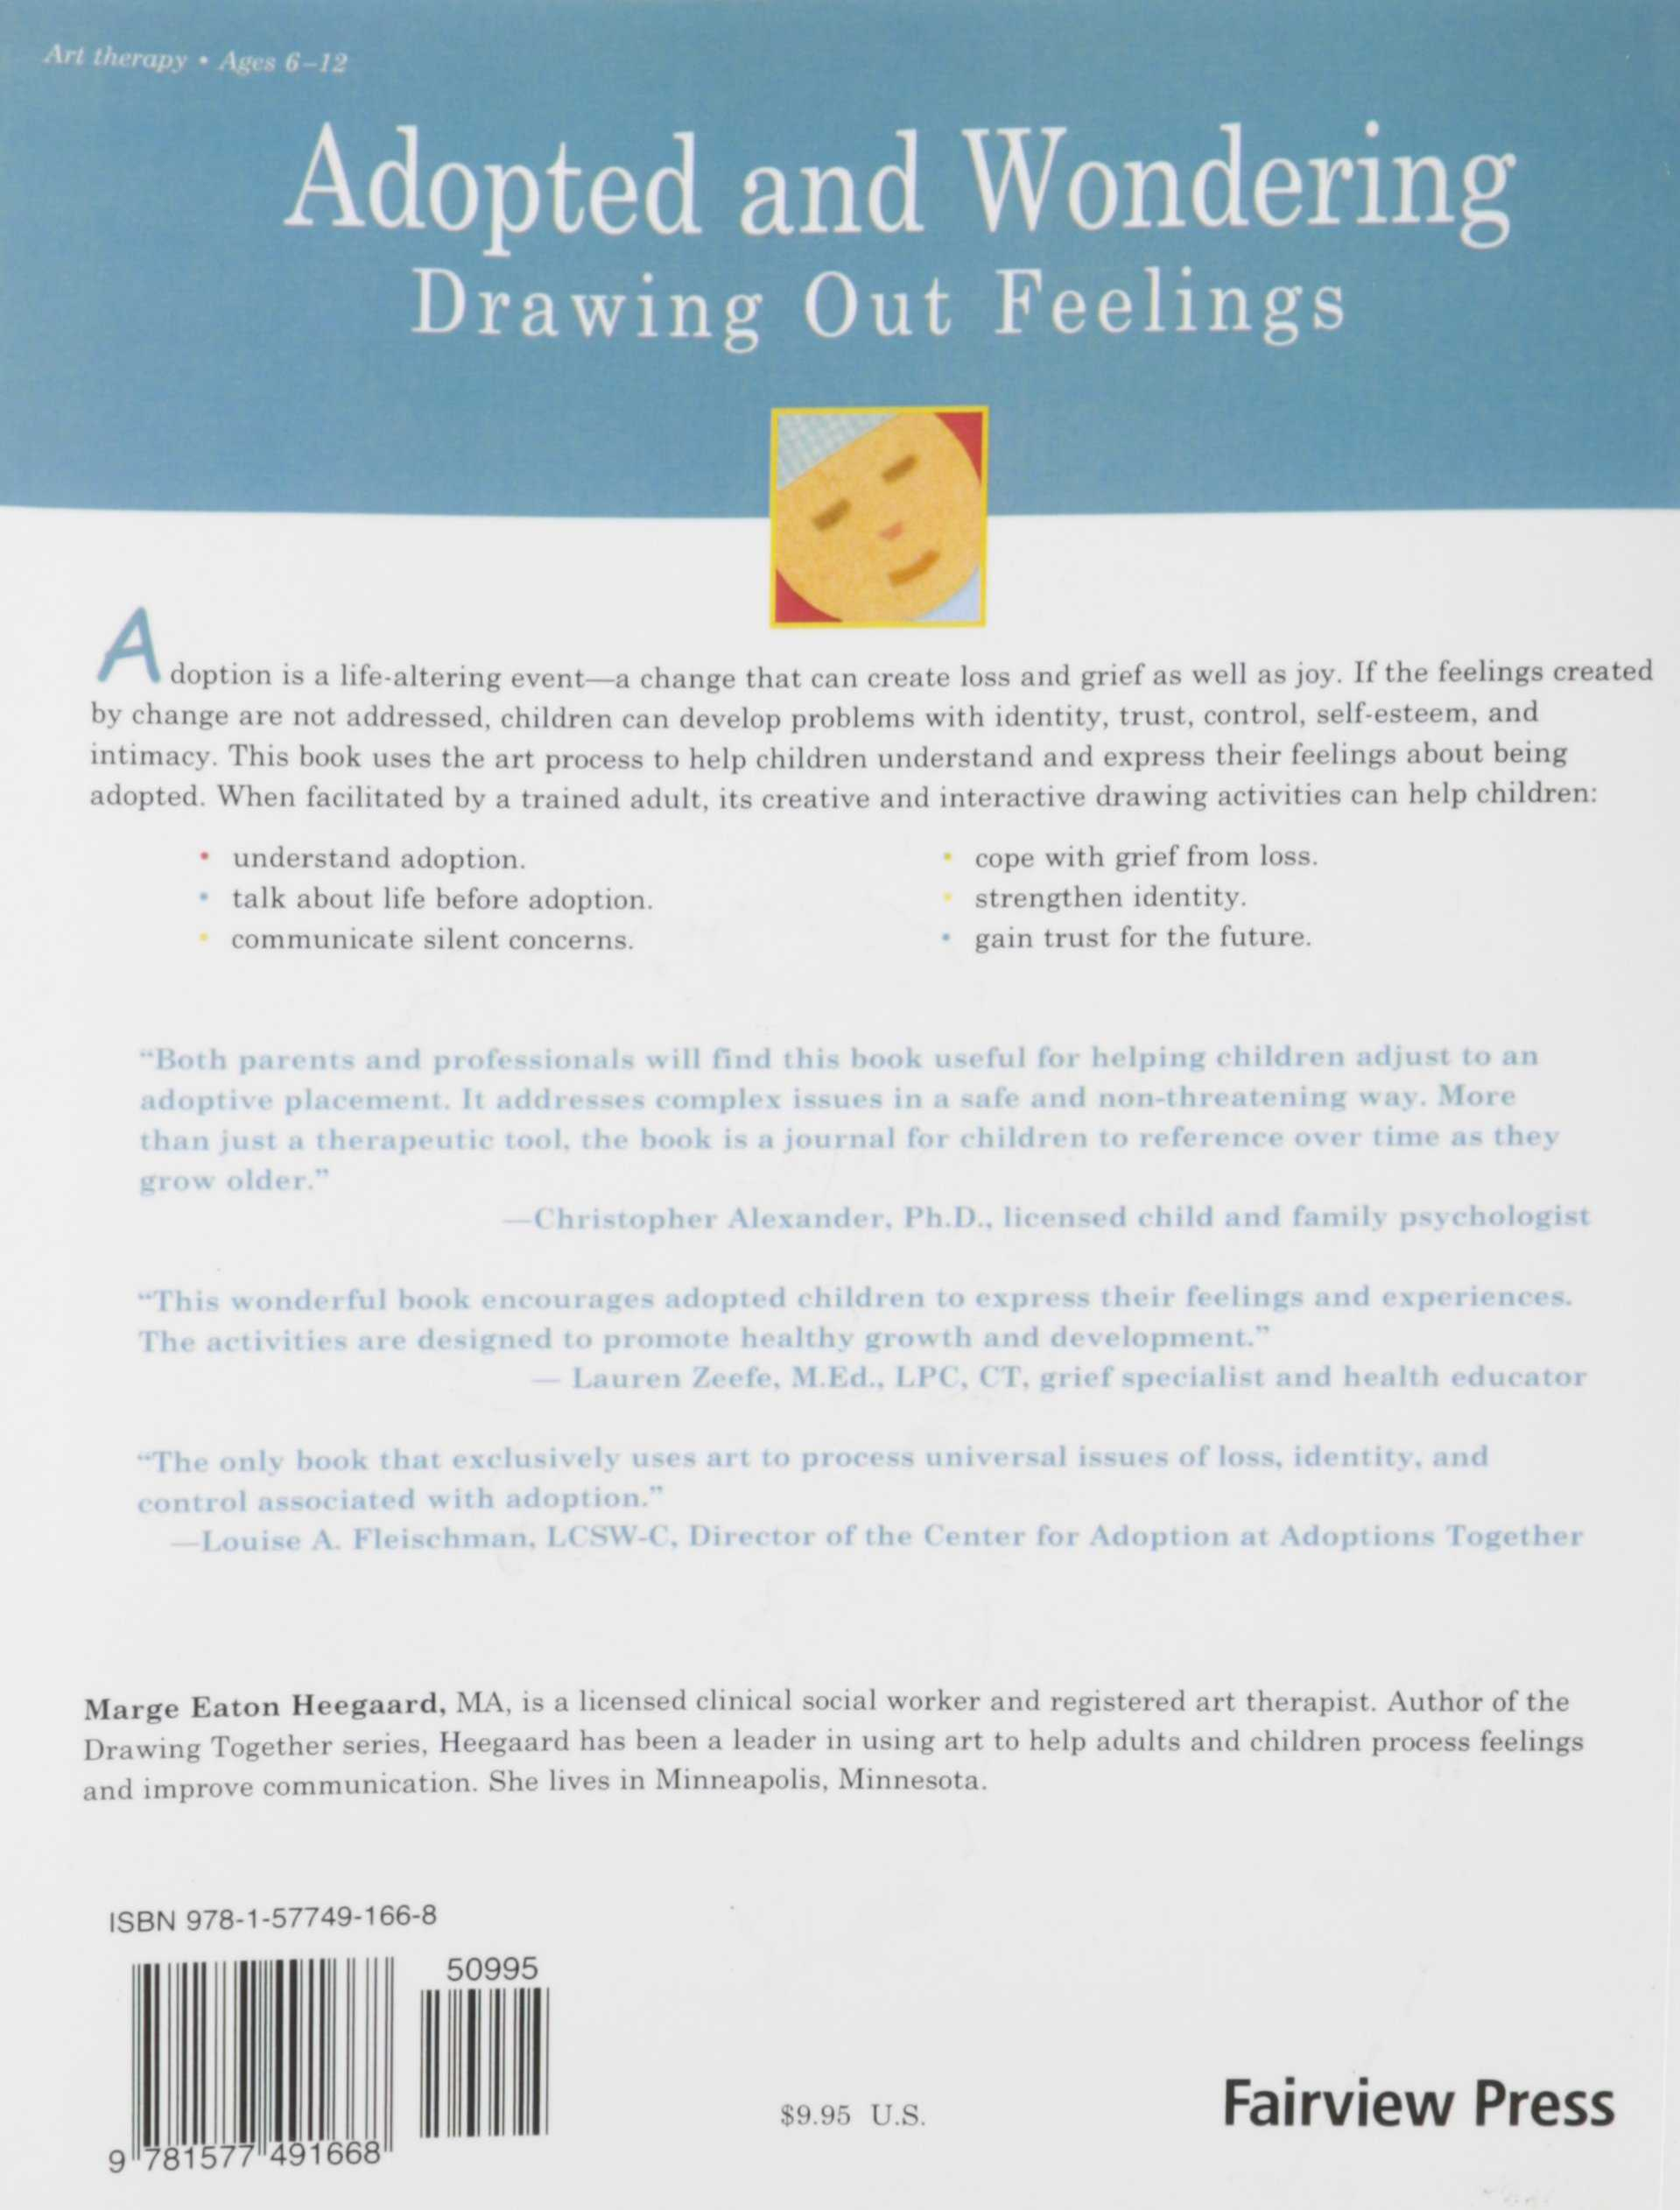 Grief and Loss Worksheets for Adults together with Adopted and Wondering Drawing Out Feelings Marge Eaton Heegaard